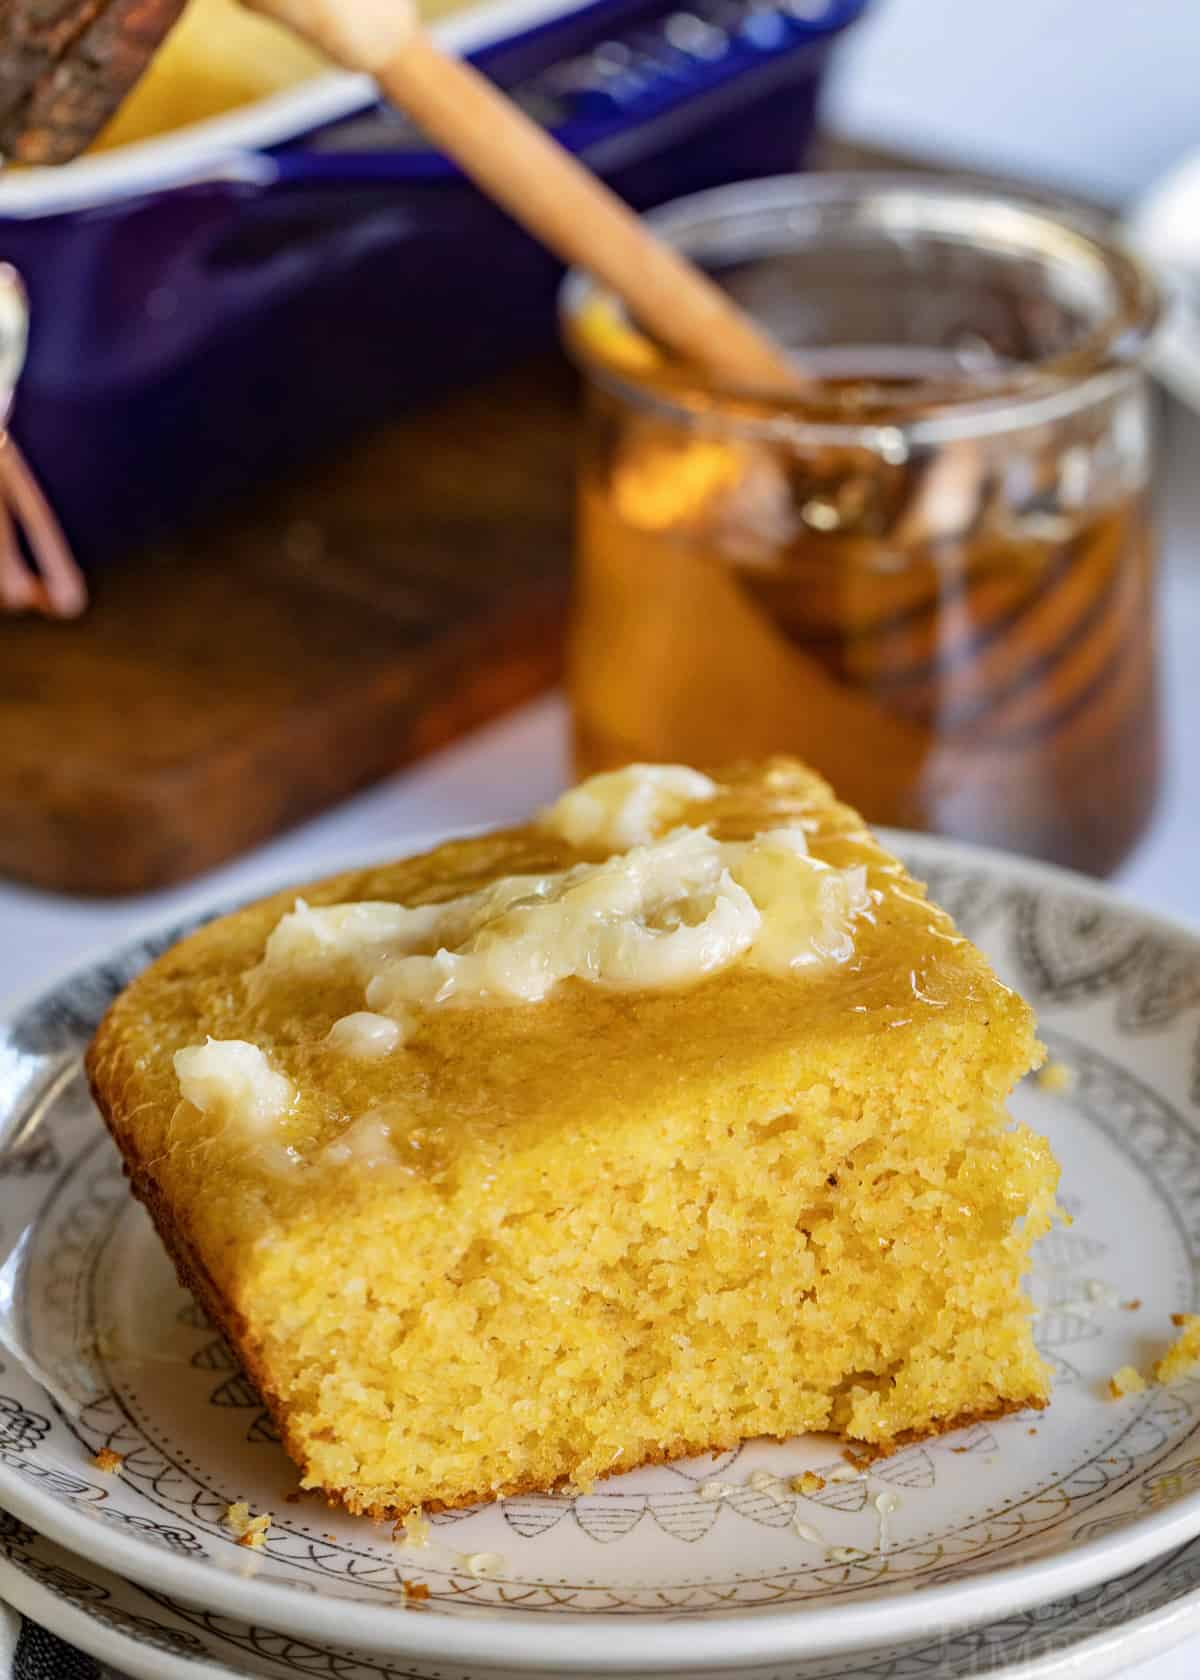 cornbread recipe piece on plate with honey butter and jar of honey in the background